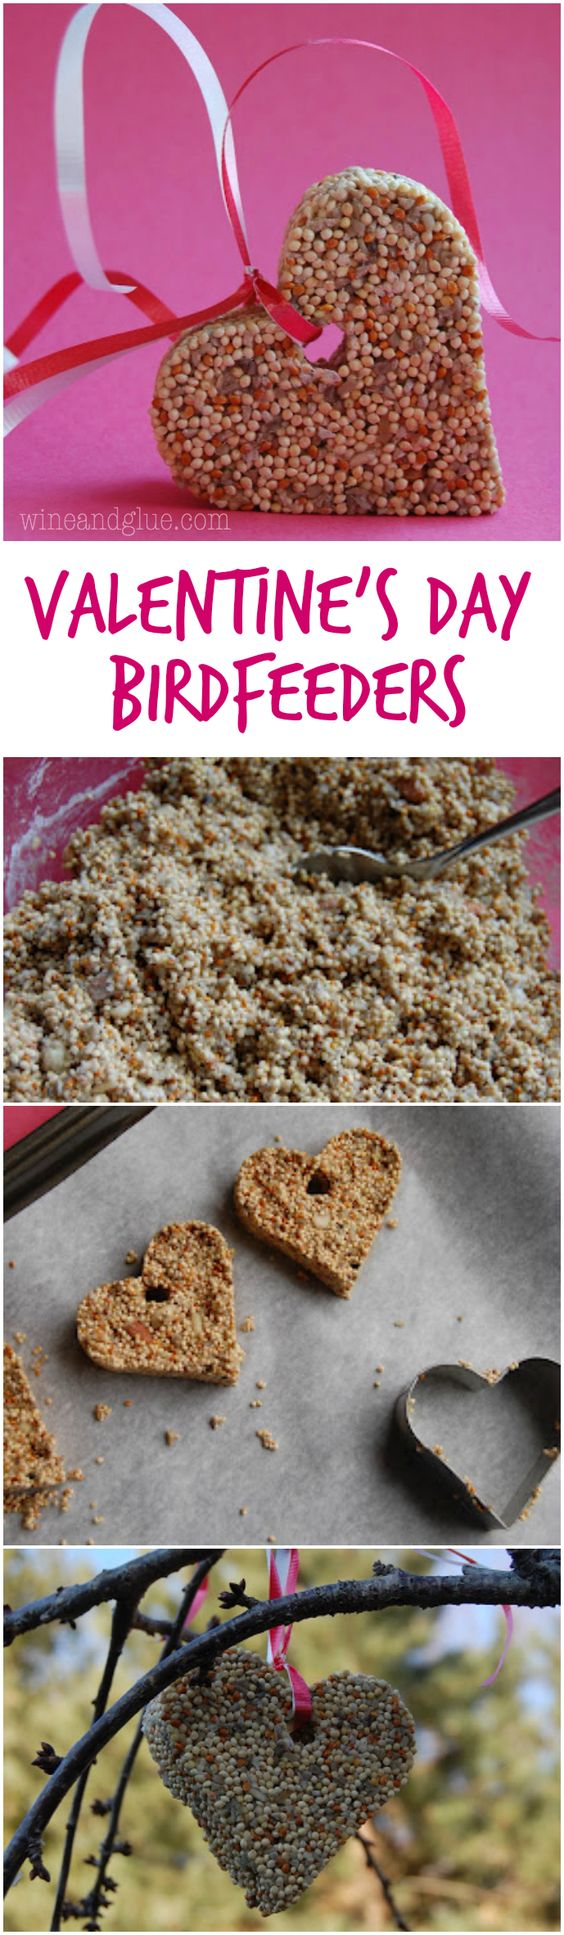 These Valentine's Day Bird Feeders are a simple craft and make for a cute little gift!: